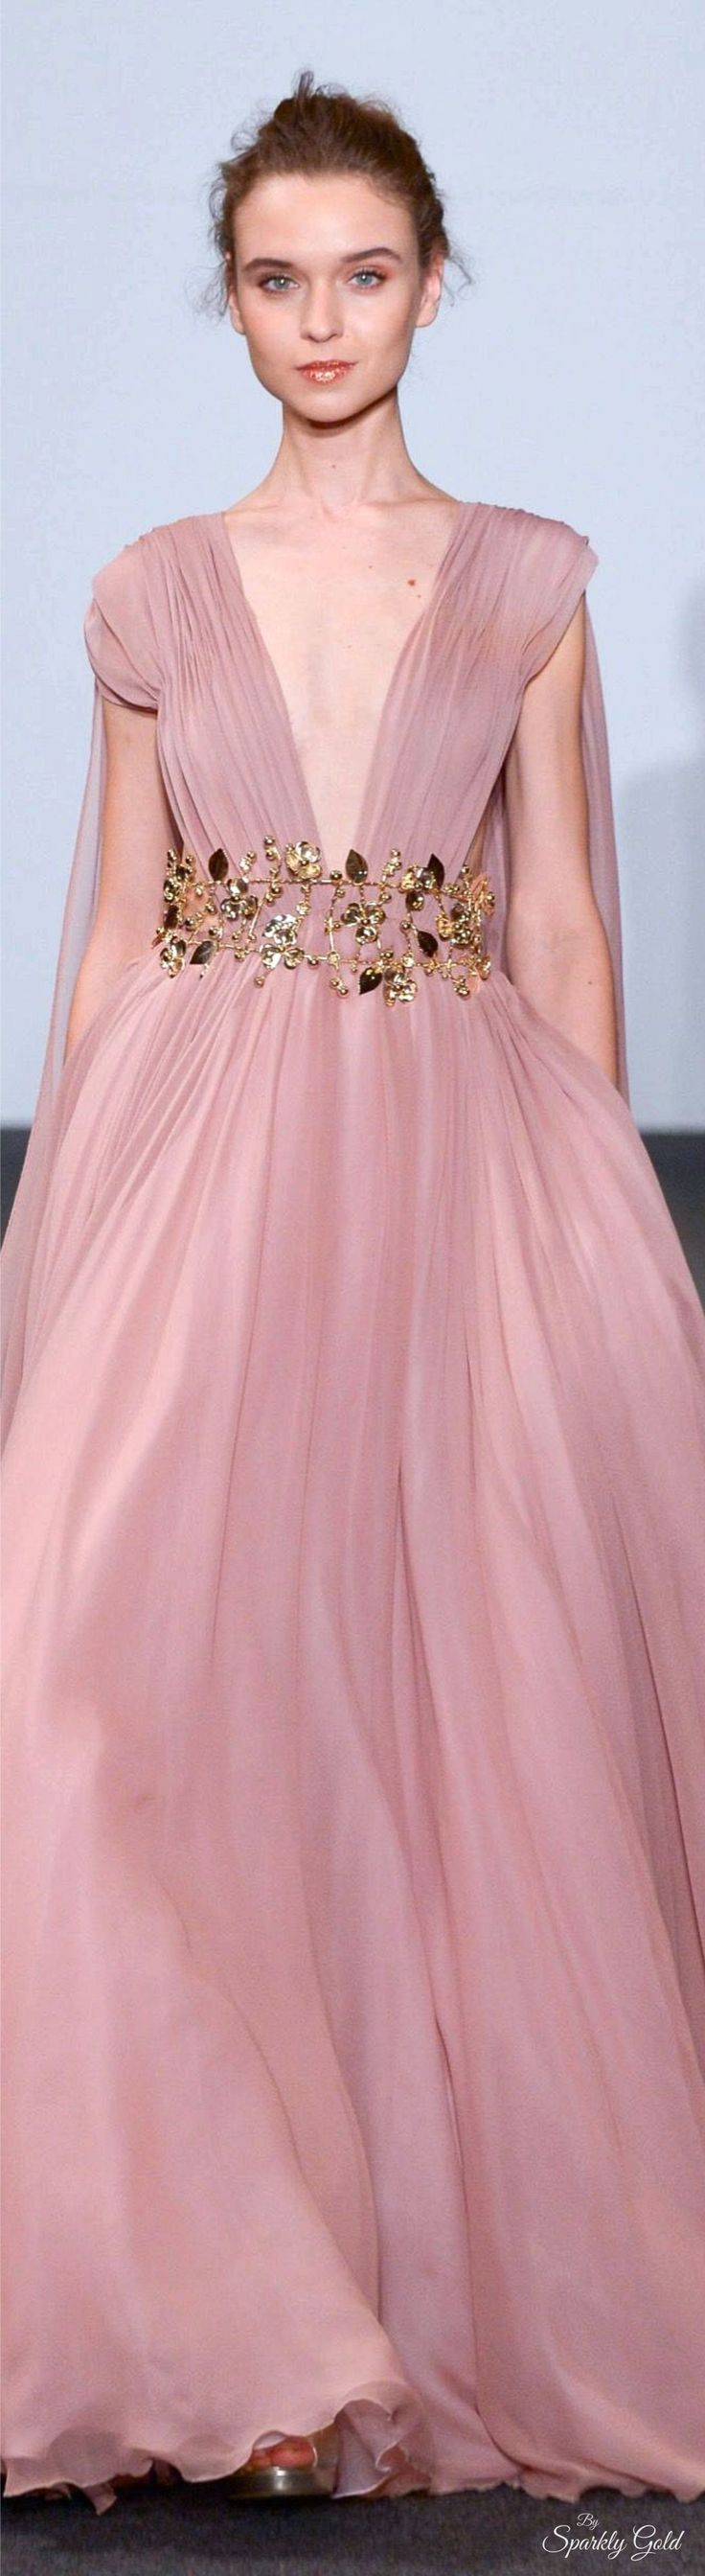 Dany Atrache Spring 2016 Couture jαɢlαdy.  A little skin baring for a wedding dress, but still okay.